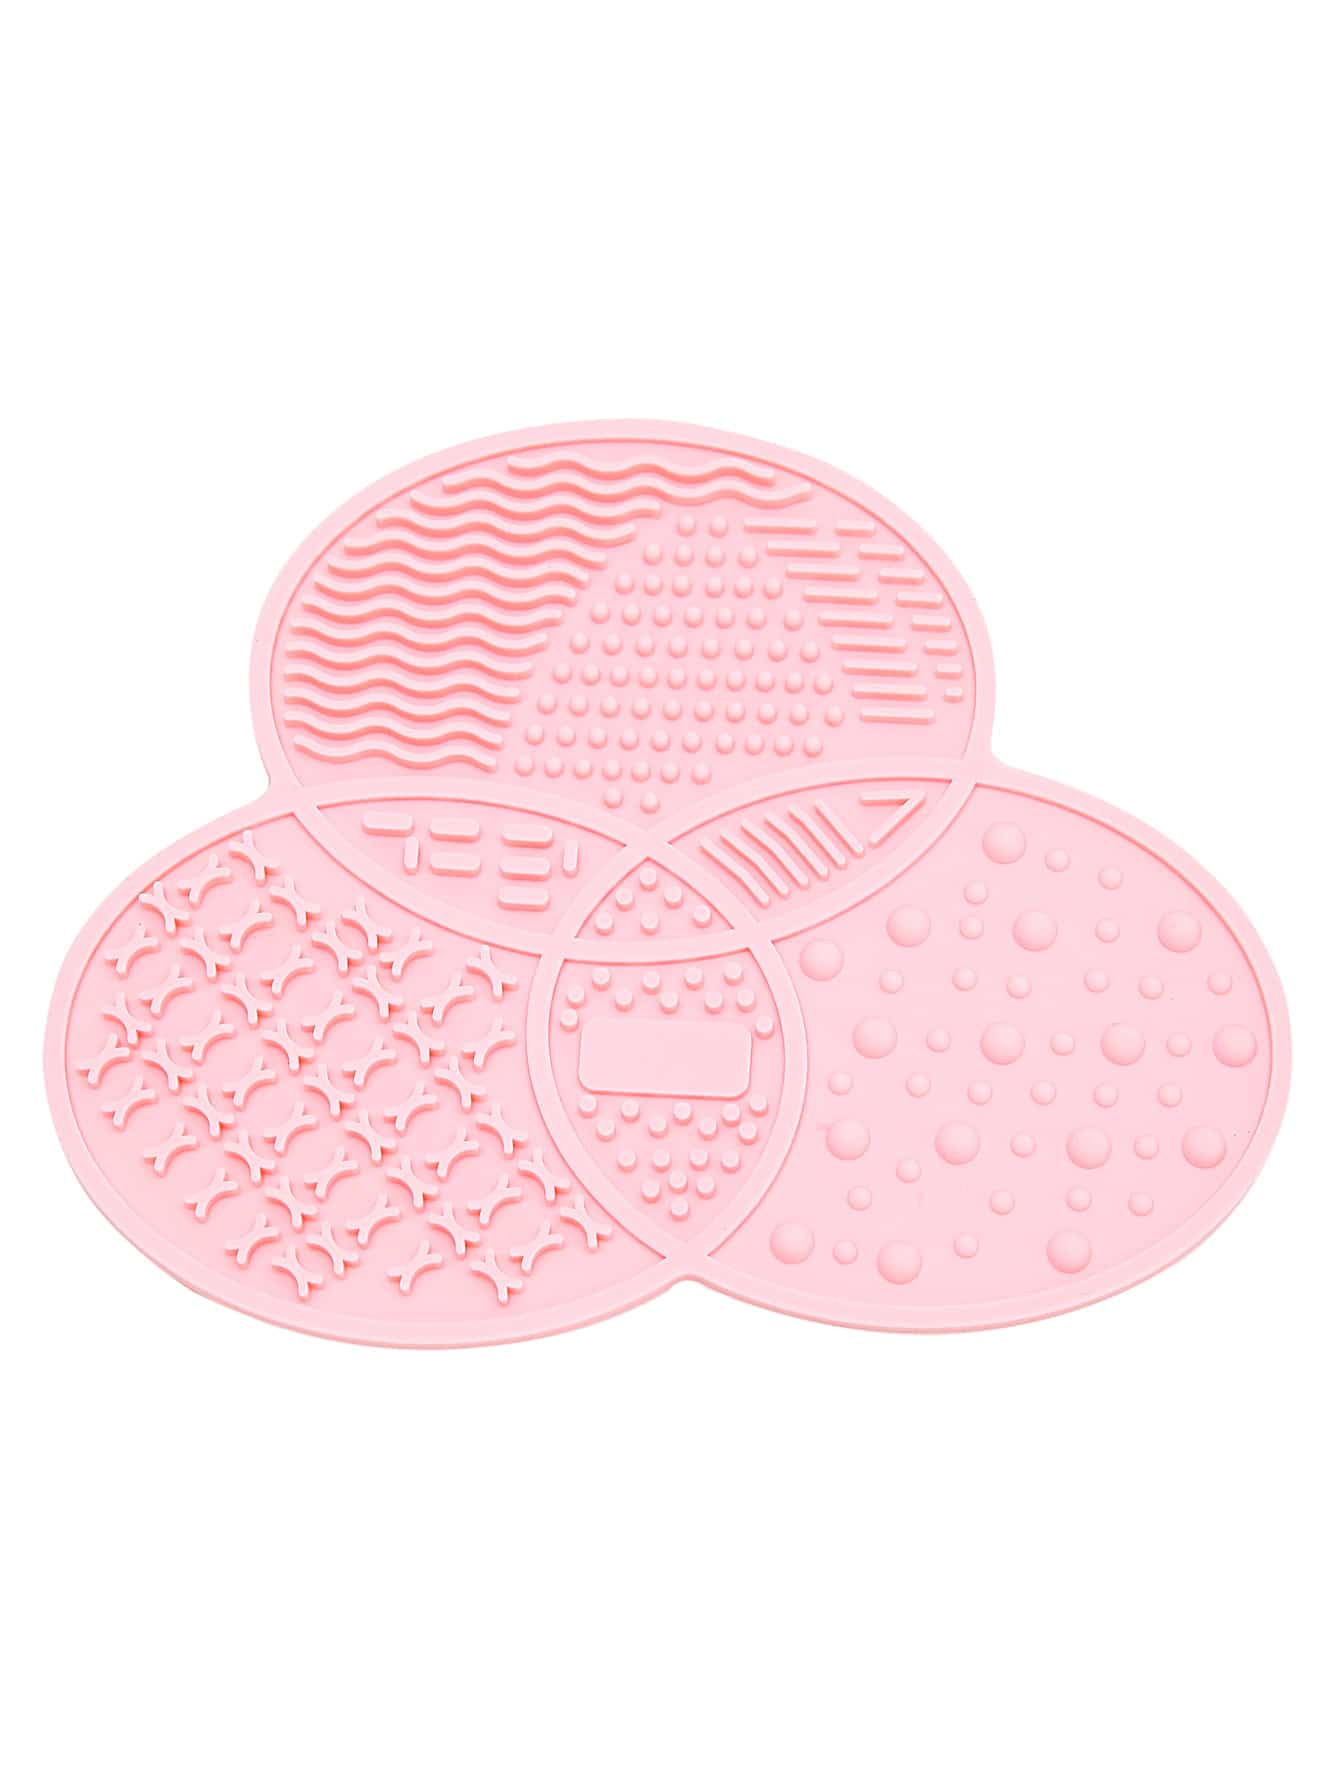 Pink Asymmetrical Makeup Cleaner Plate dia 400mm 900w 120v 3m ntc 100k round tank silicone heater huge 3d printer build plate heated bed electric heating plate element